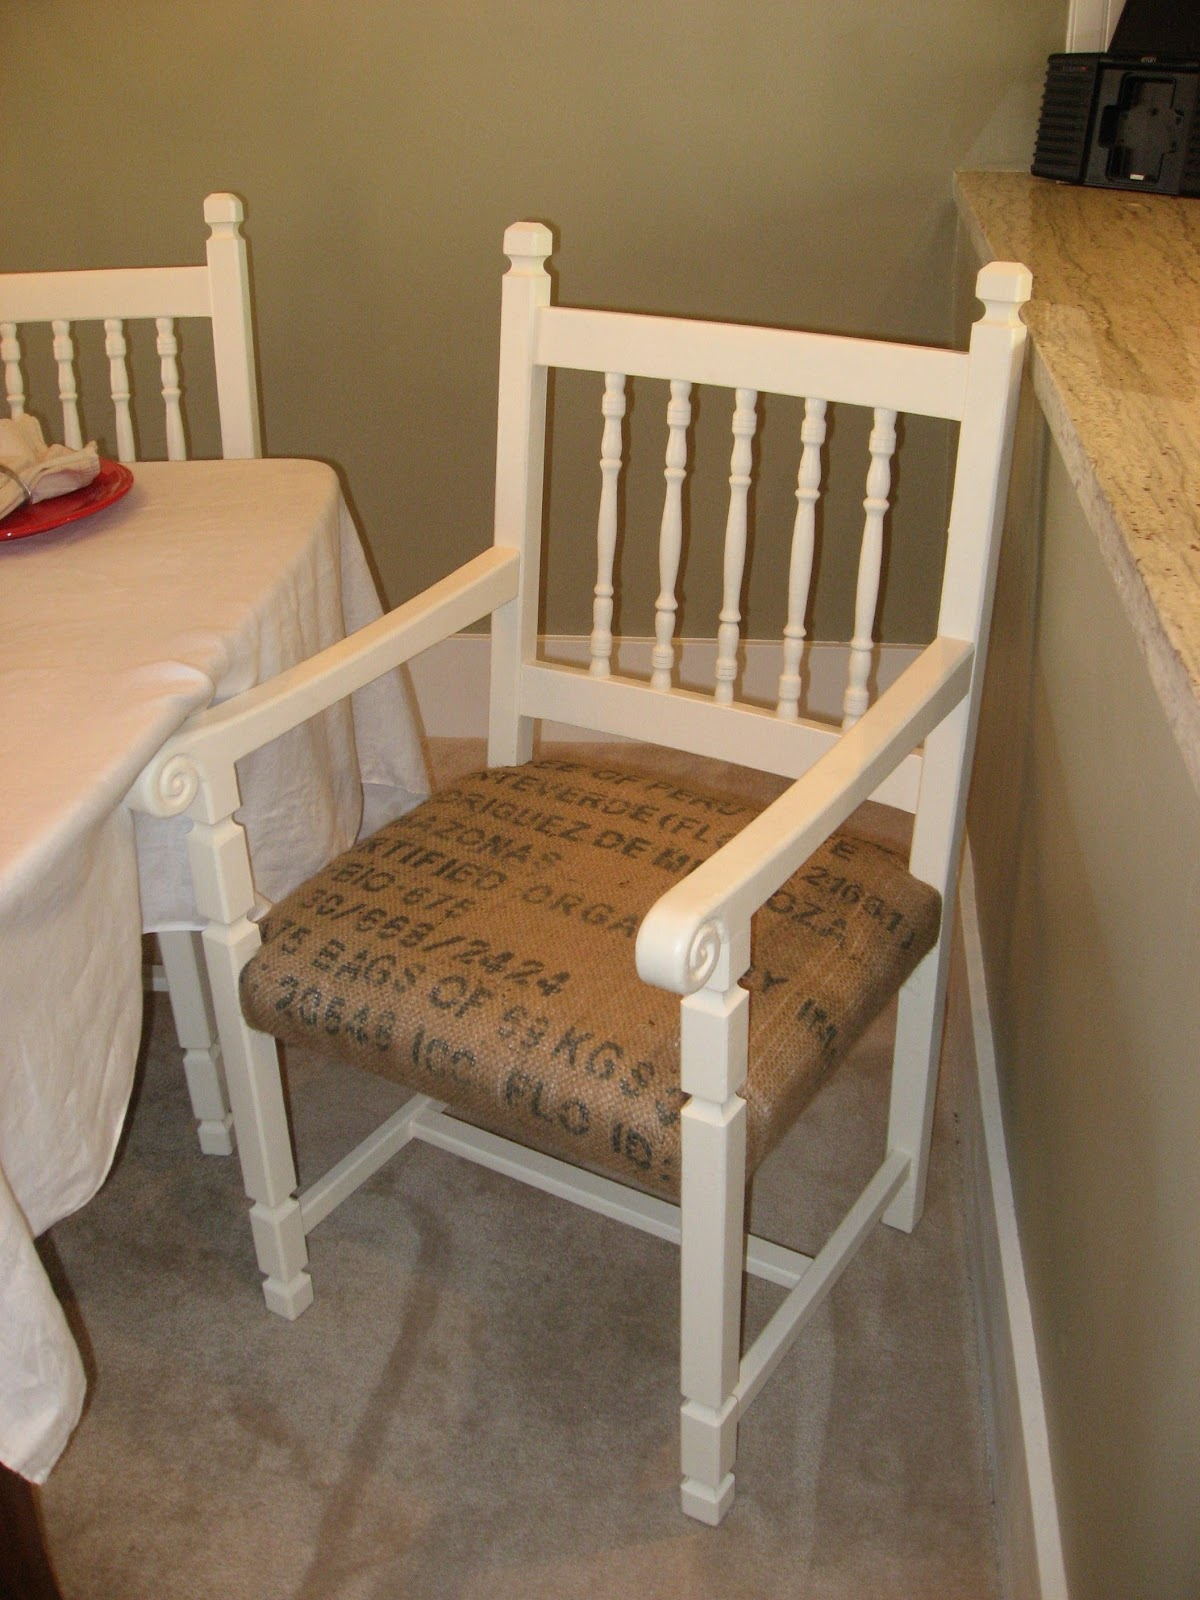 Creations dining chairs upholstered with burlap coffee sacks